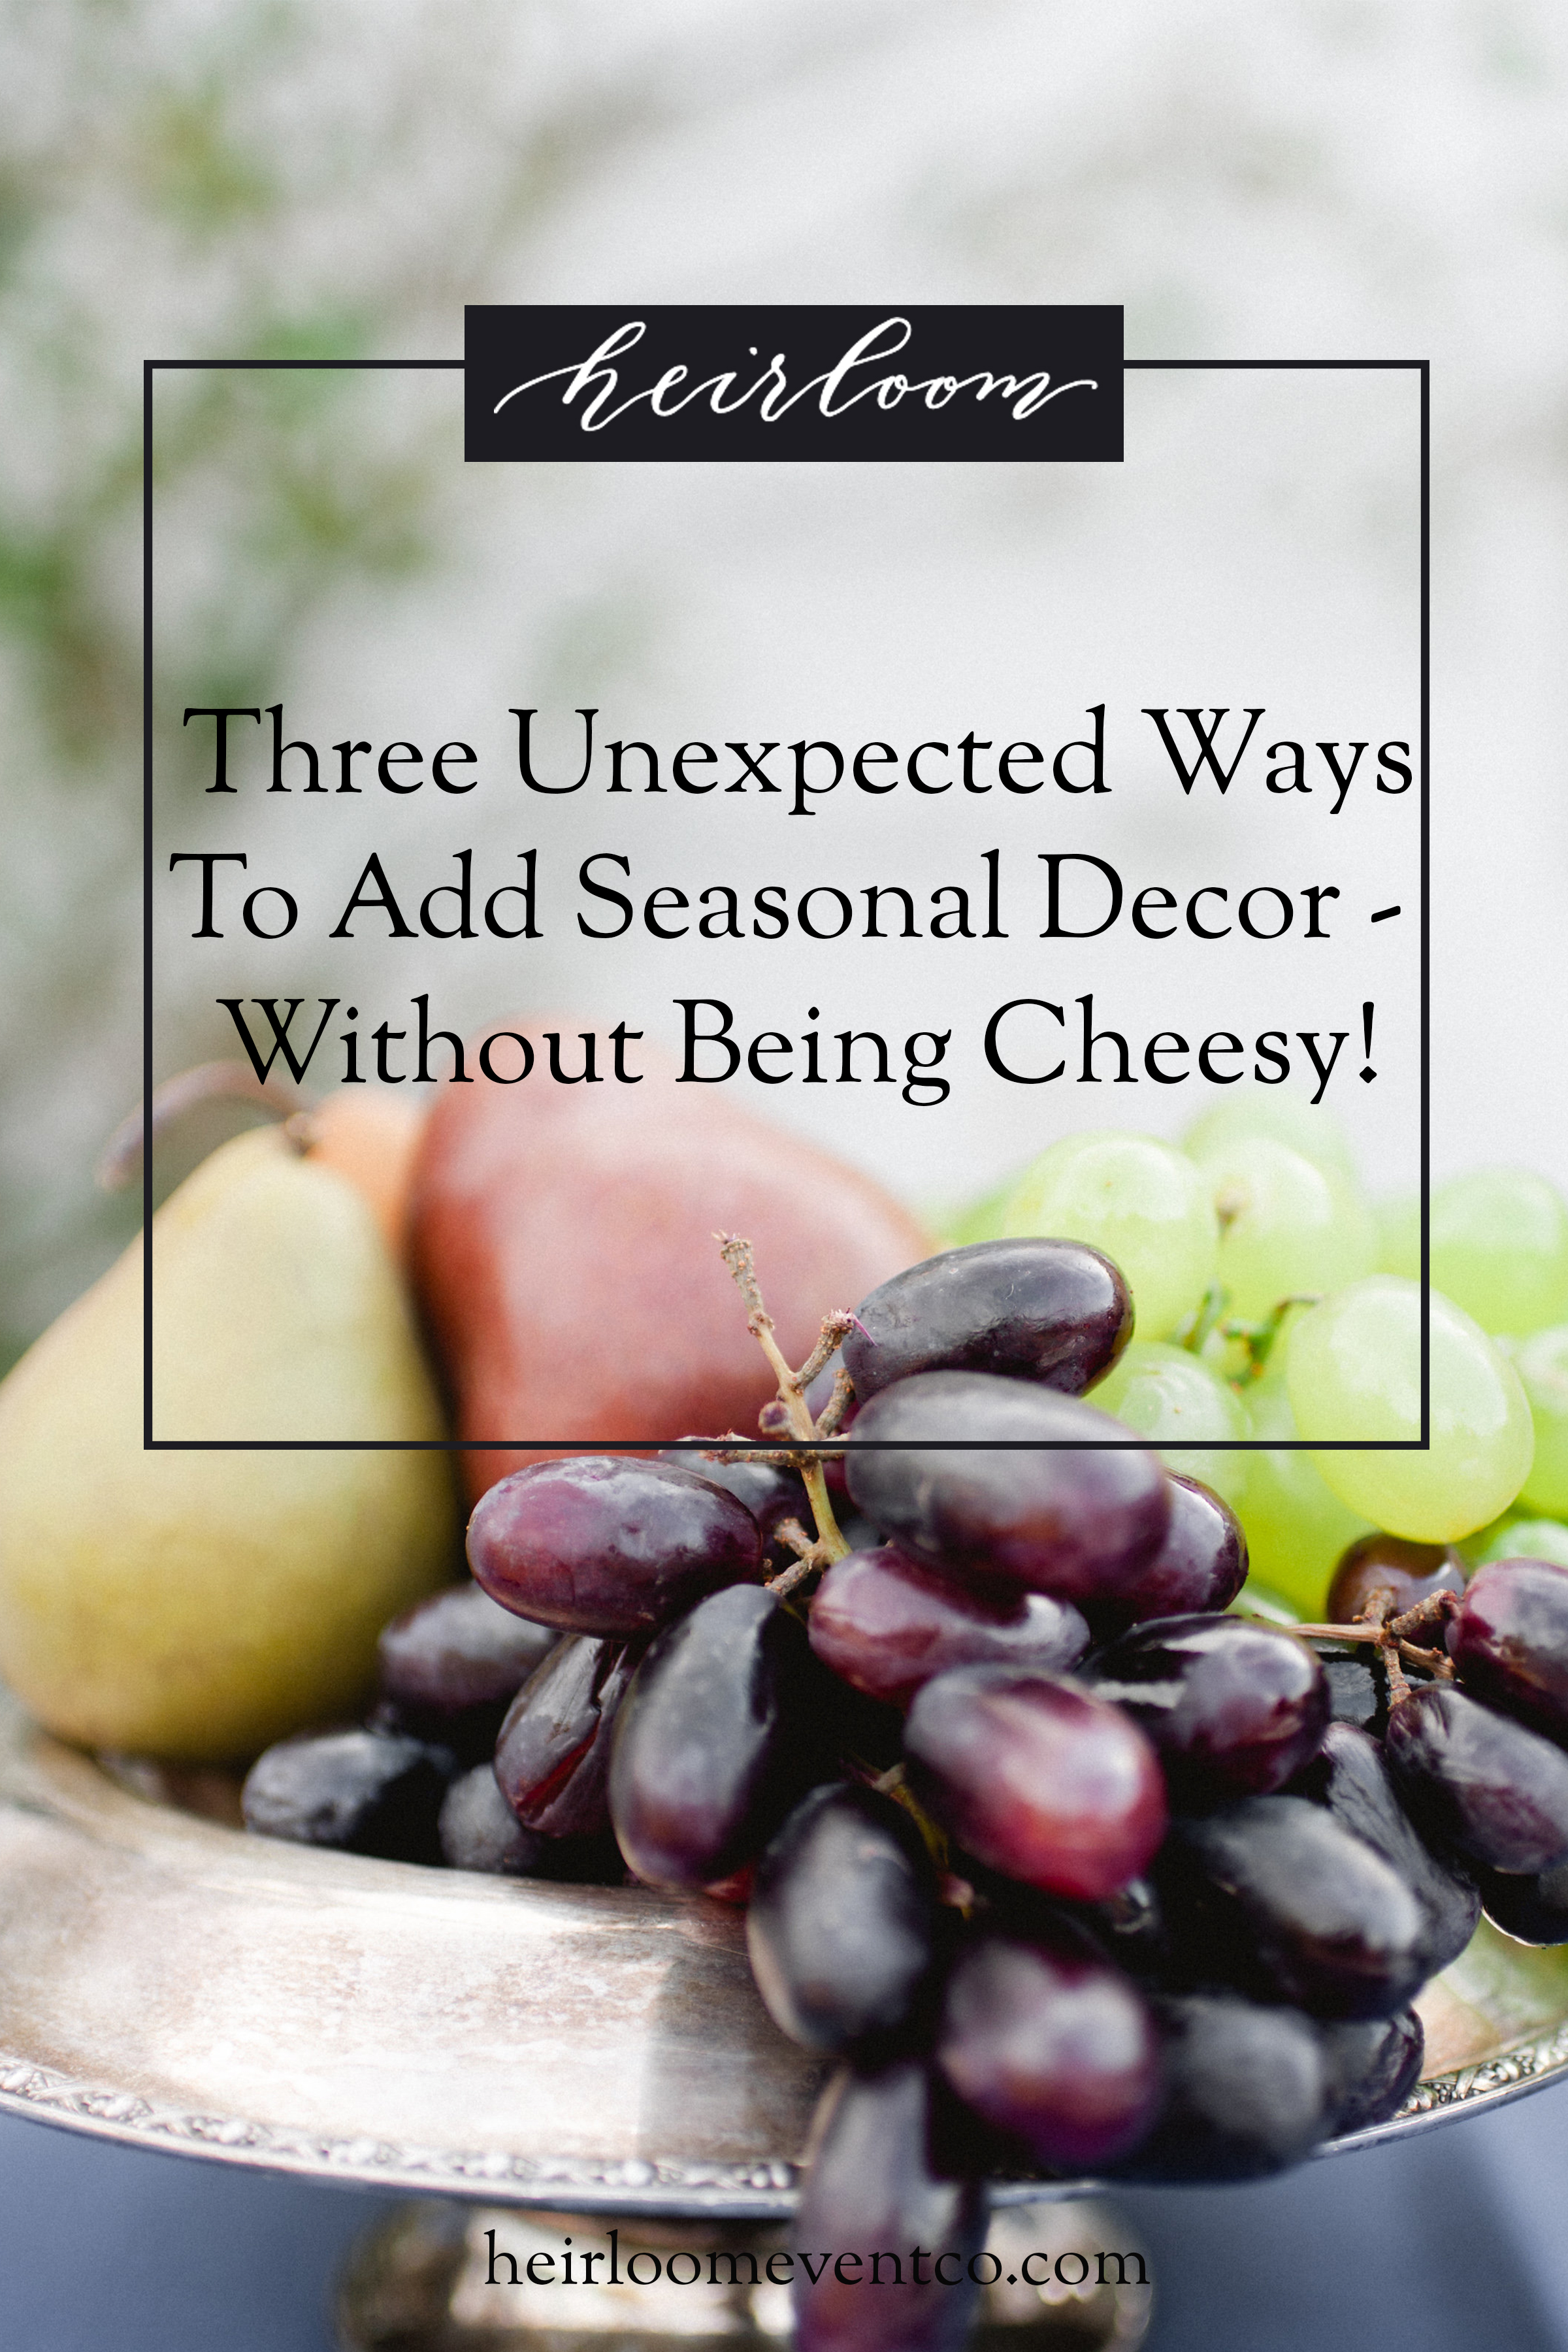 Heirloom Event Co. | Three Unexpected Ways To Incorporate Seasonal Decor Without Being Cheesy